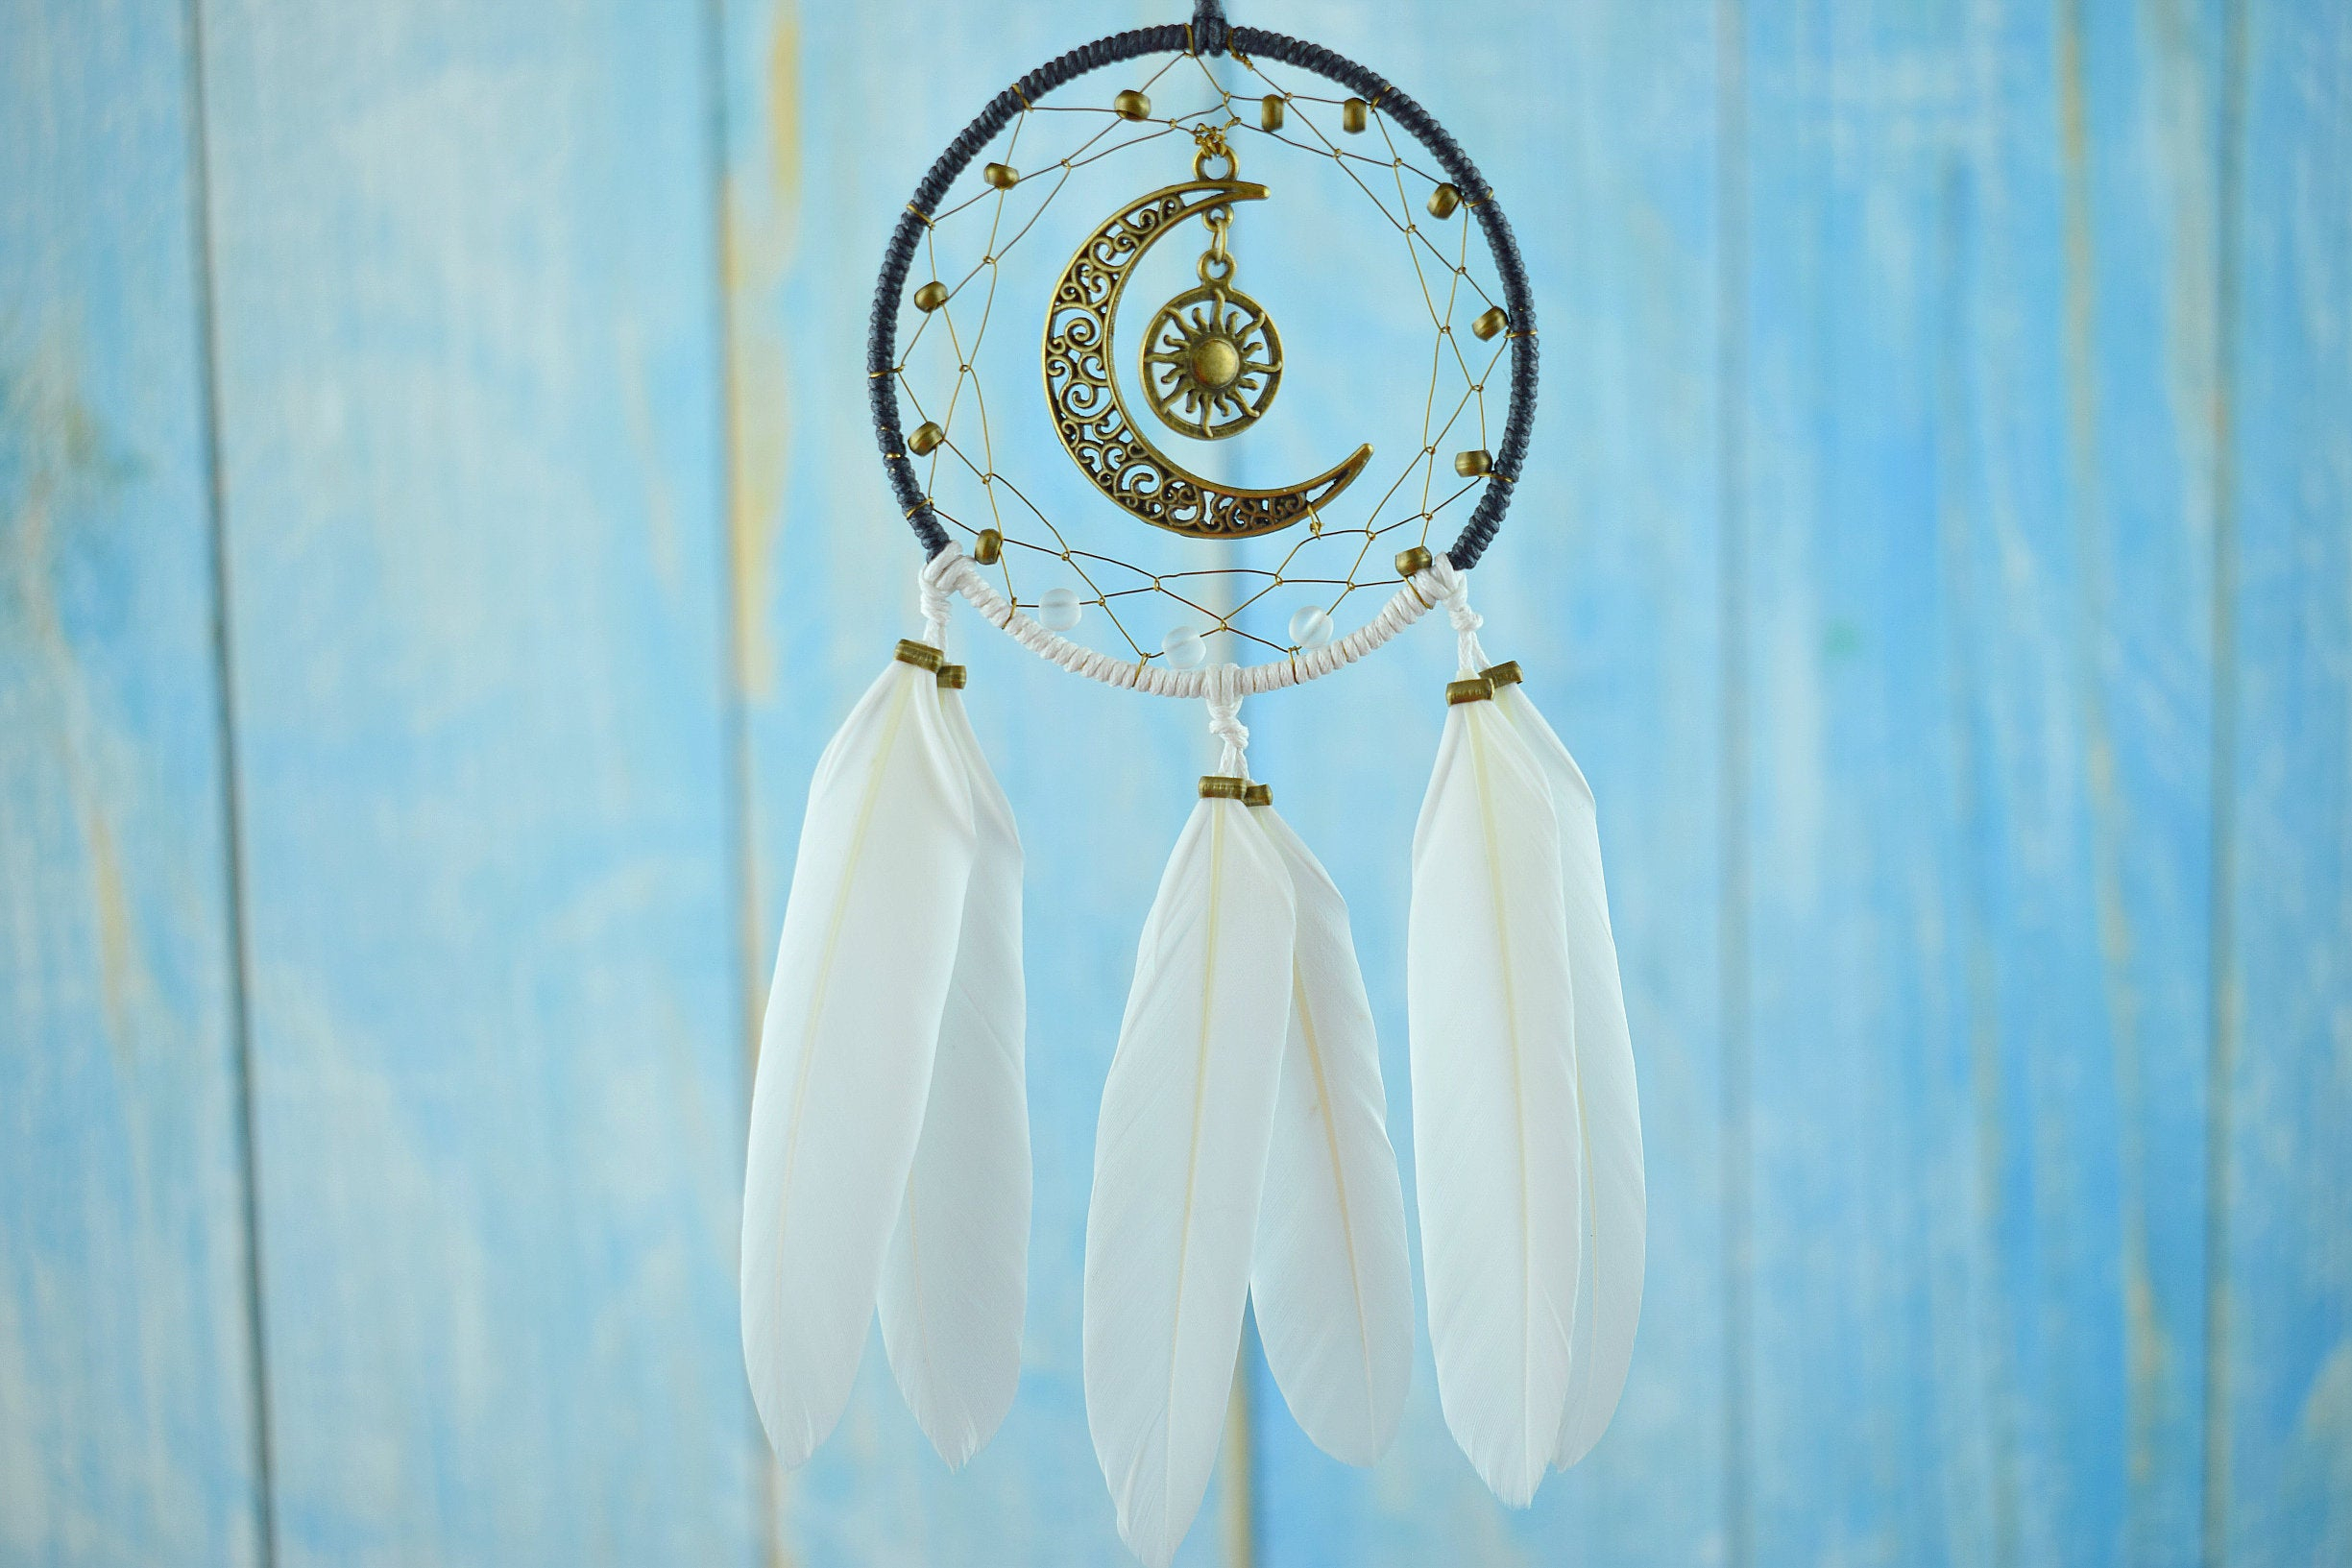 Moon And Sun Dream Catcher For Car Accessories For Women Vegan Decoration Crescent Gold Moon Phase Wall Hanging Recycled Art Pagan Decor Throughout Recycled Moon And Sun Wall Decor (View 13 of 30)